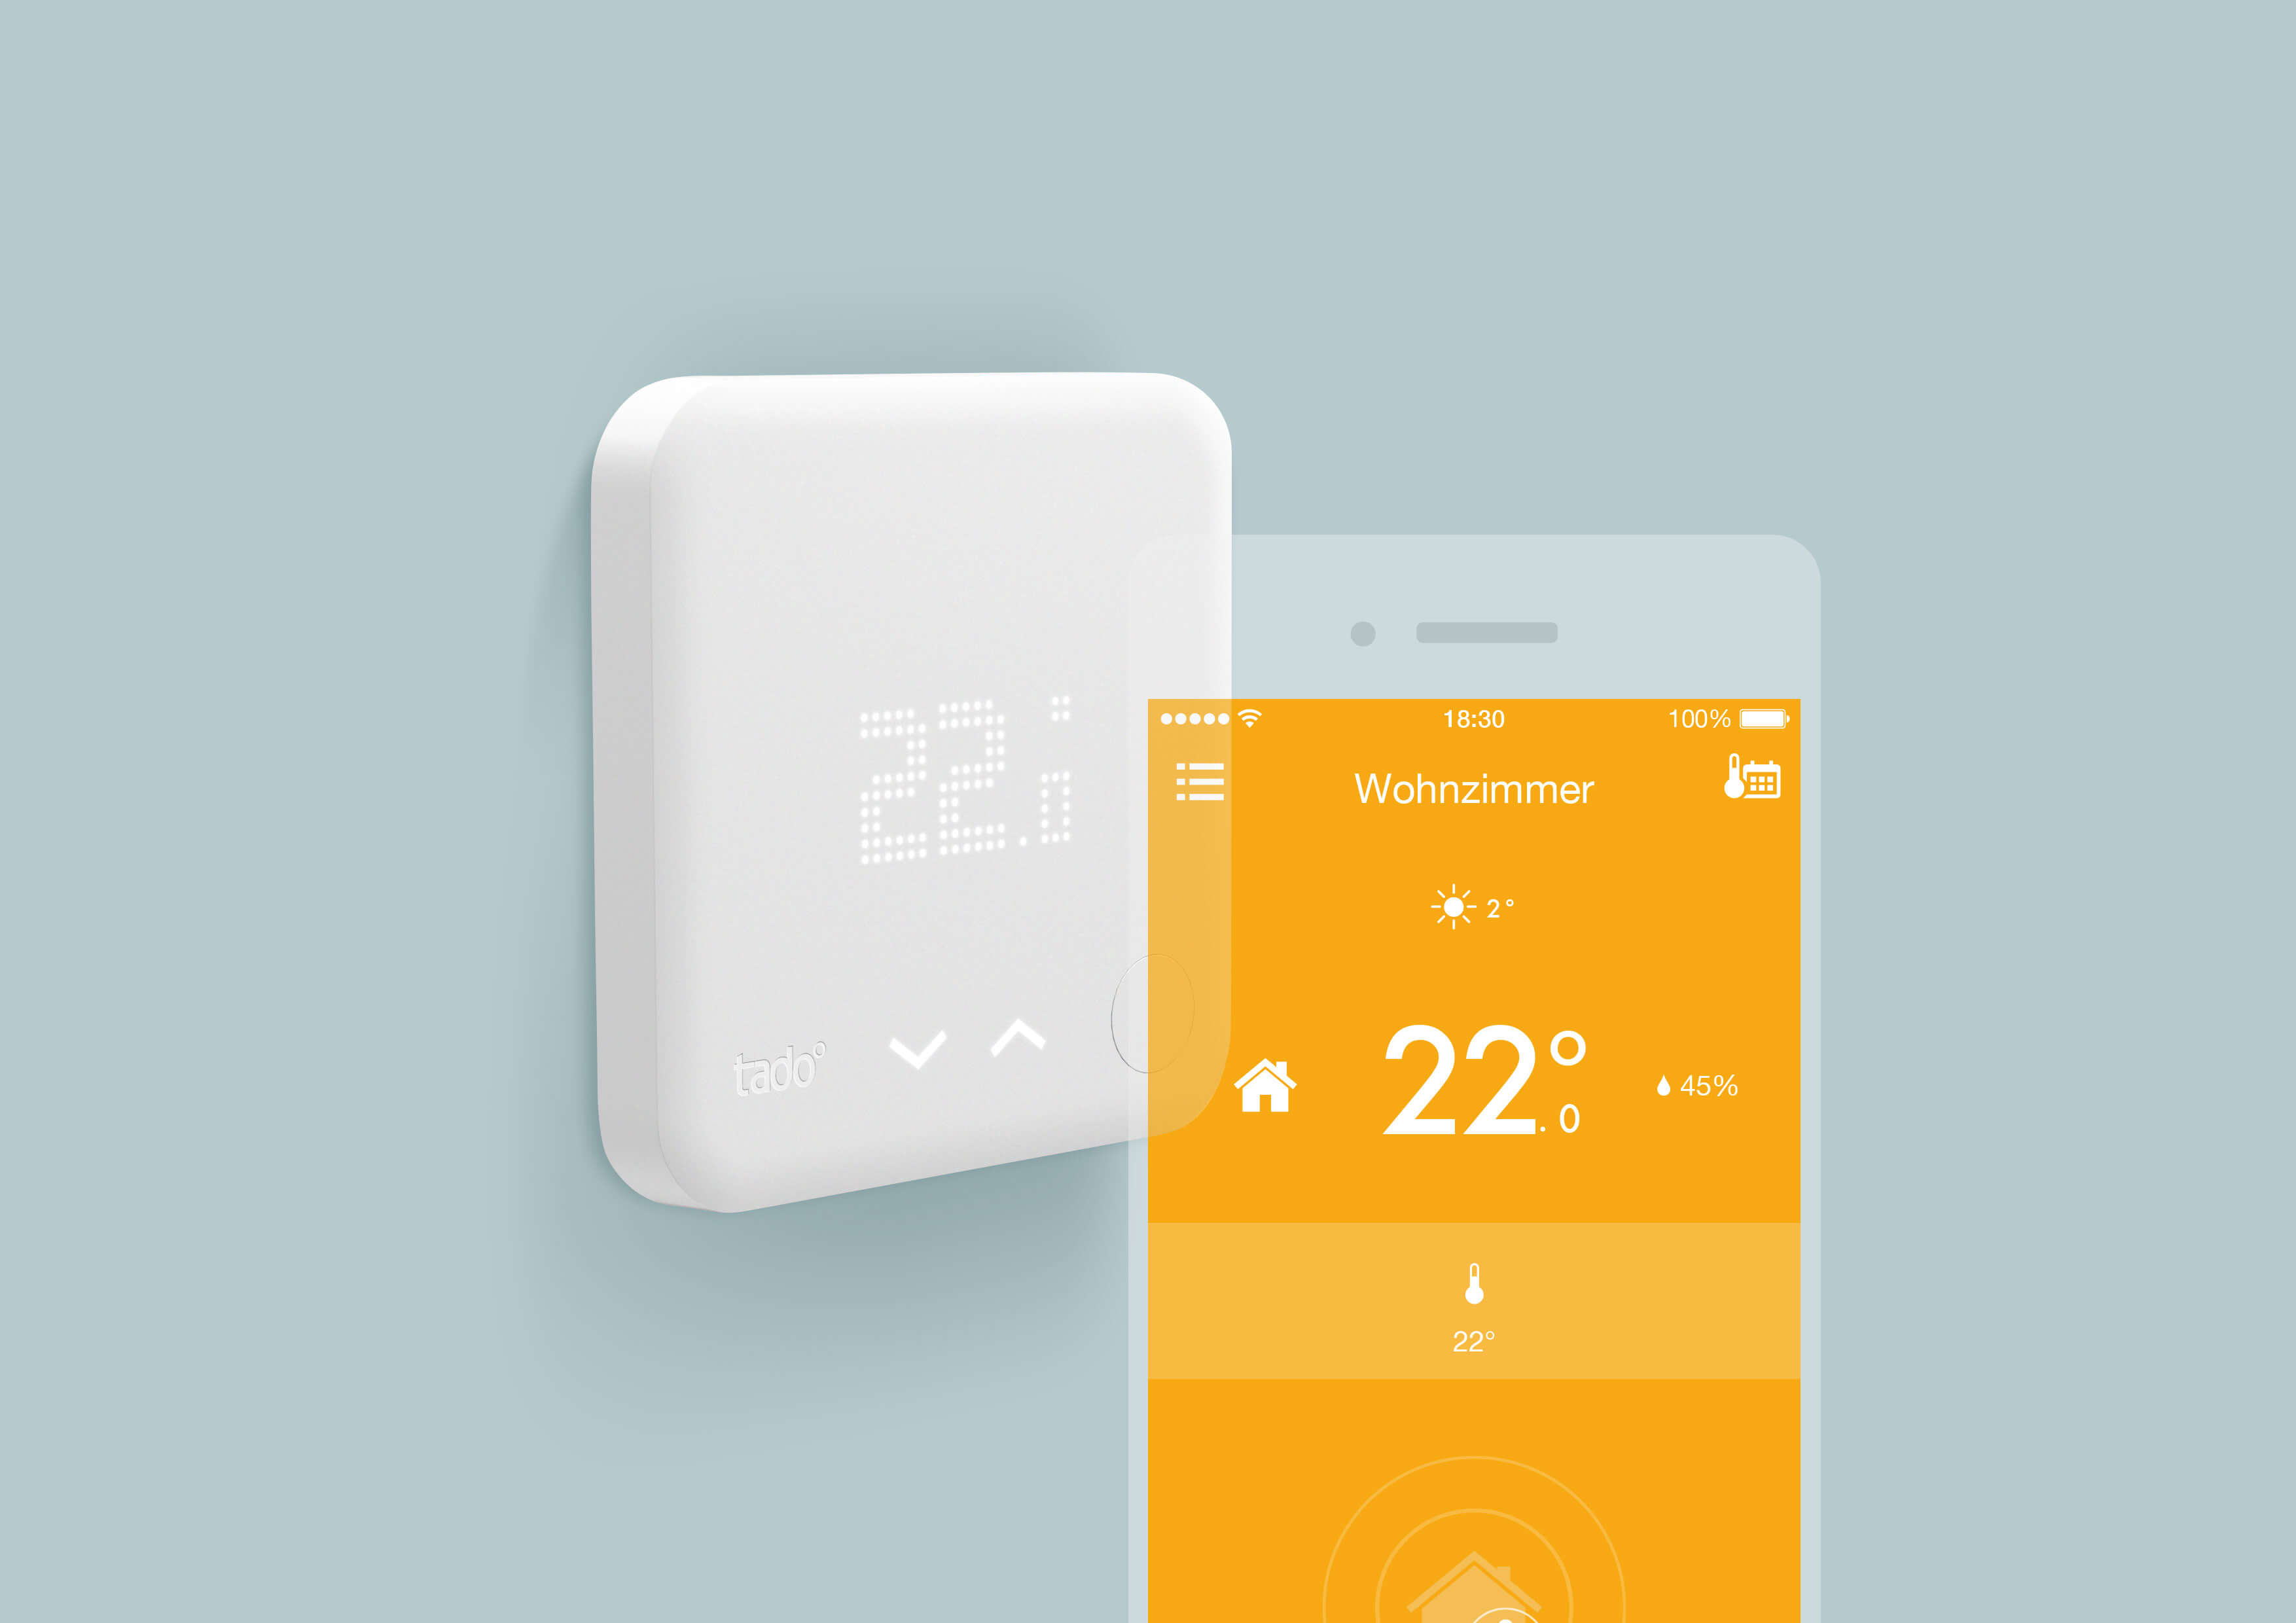 vergleich tado smart thermostat netatmo thermostat. Black Bedroom Furniture Sets. Home Design Ideas